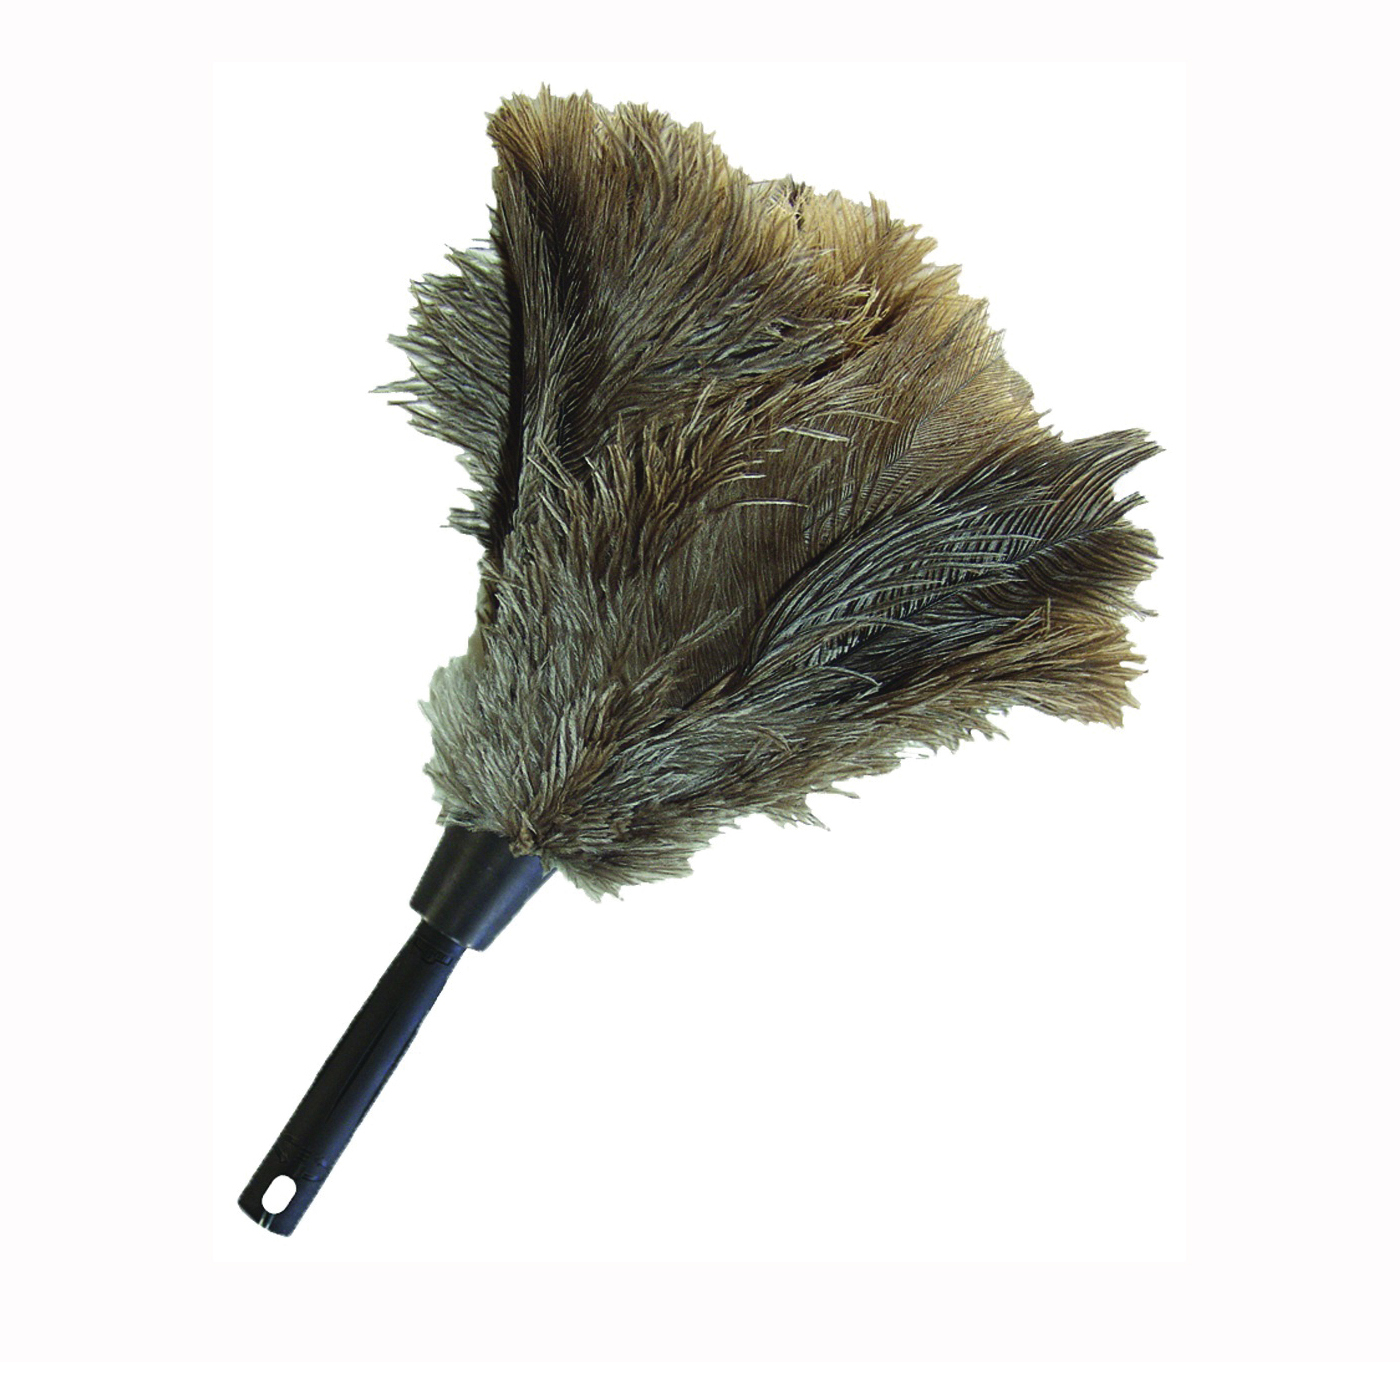 Picture of Unger 92140 Duster, Ostrich Feather Head